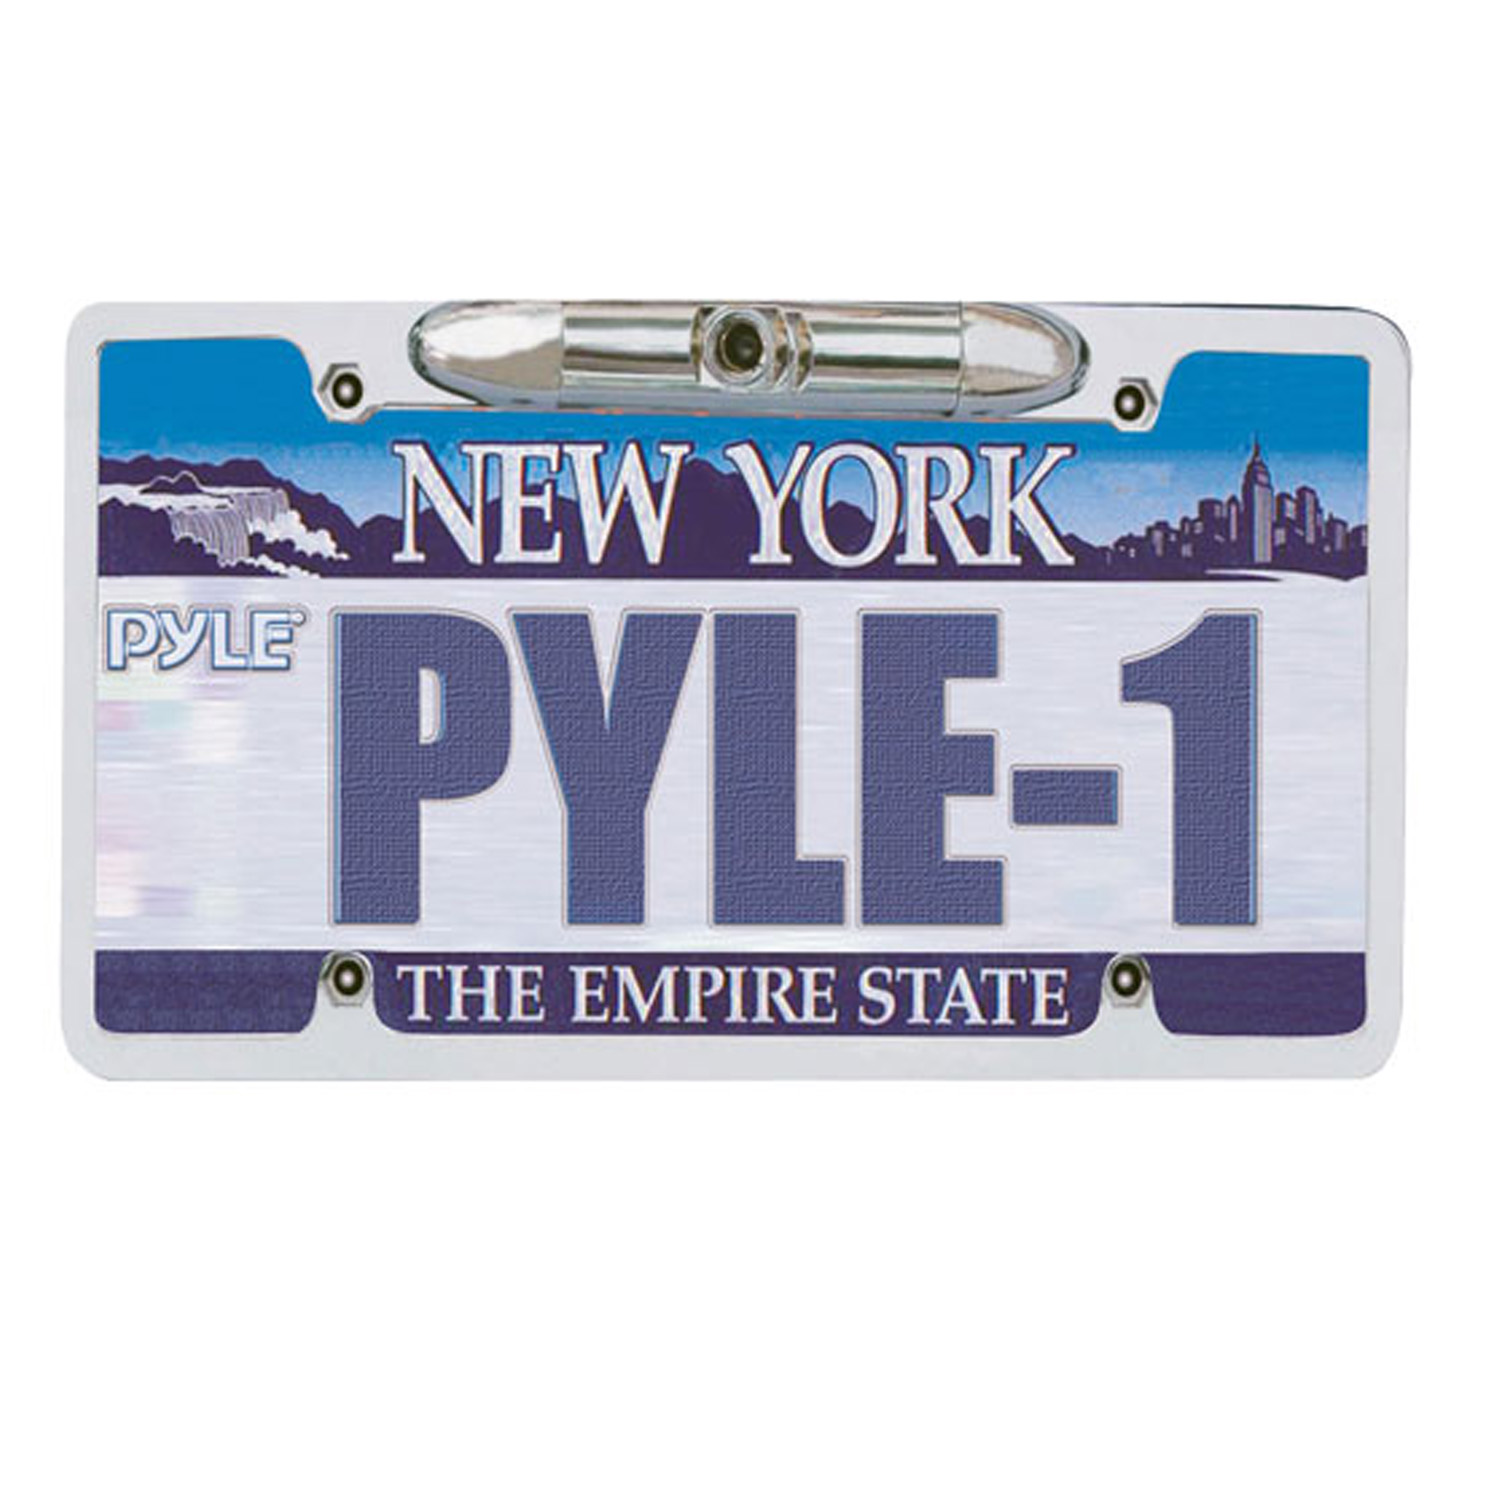 Pyle License Plate Rear View Camera